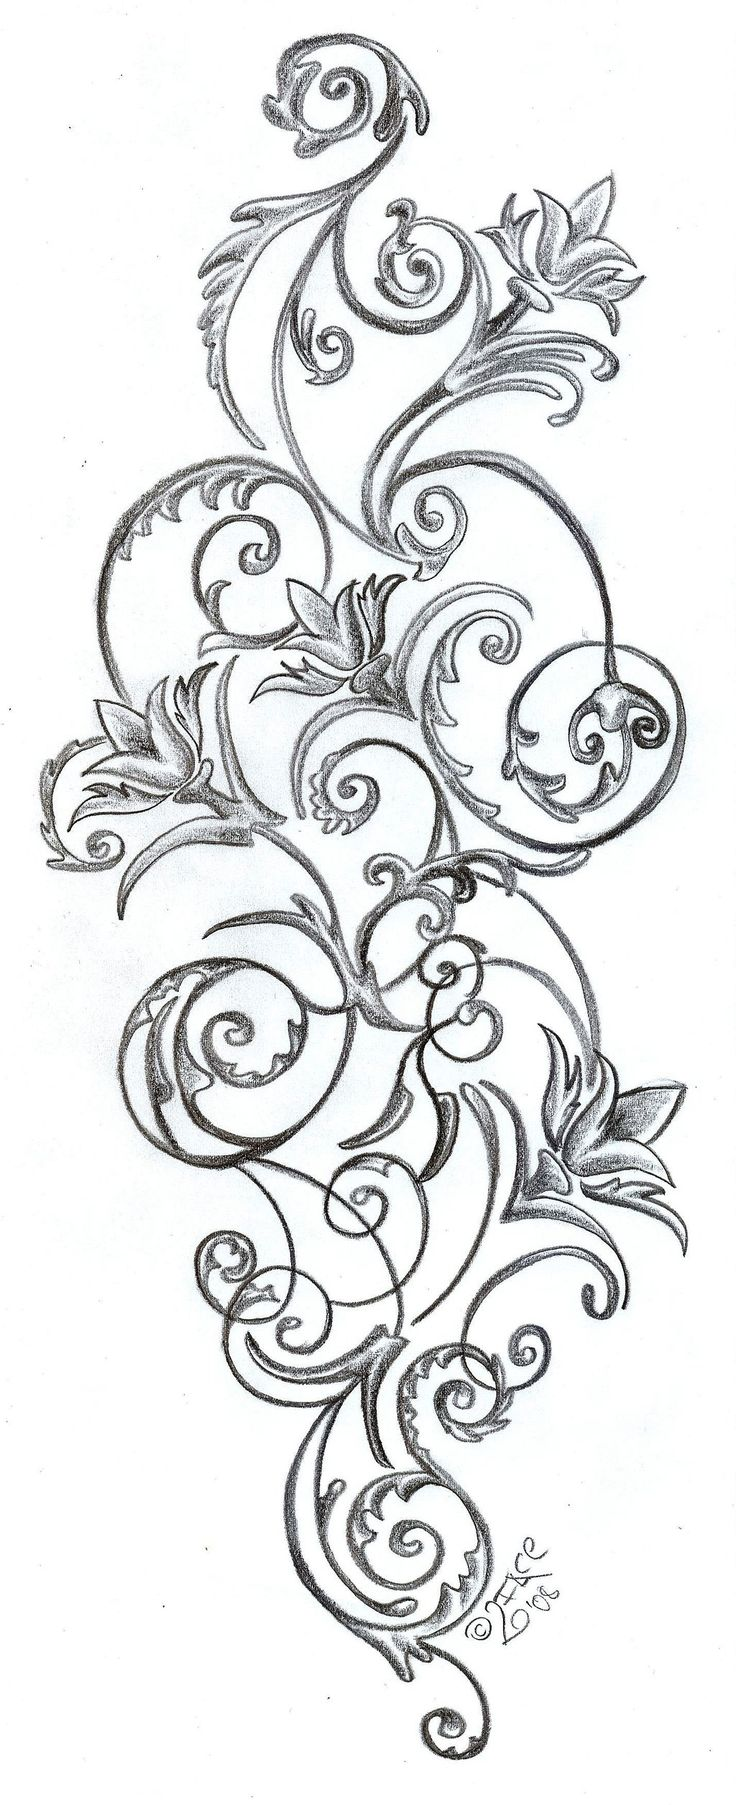 Flowers ornamentation Design by 2Face-Tattoo.deviantart.com on @deviantART